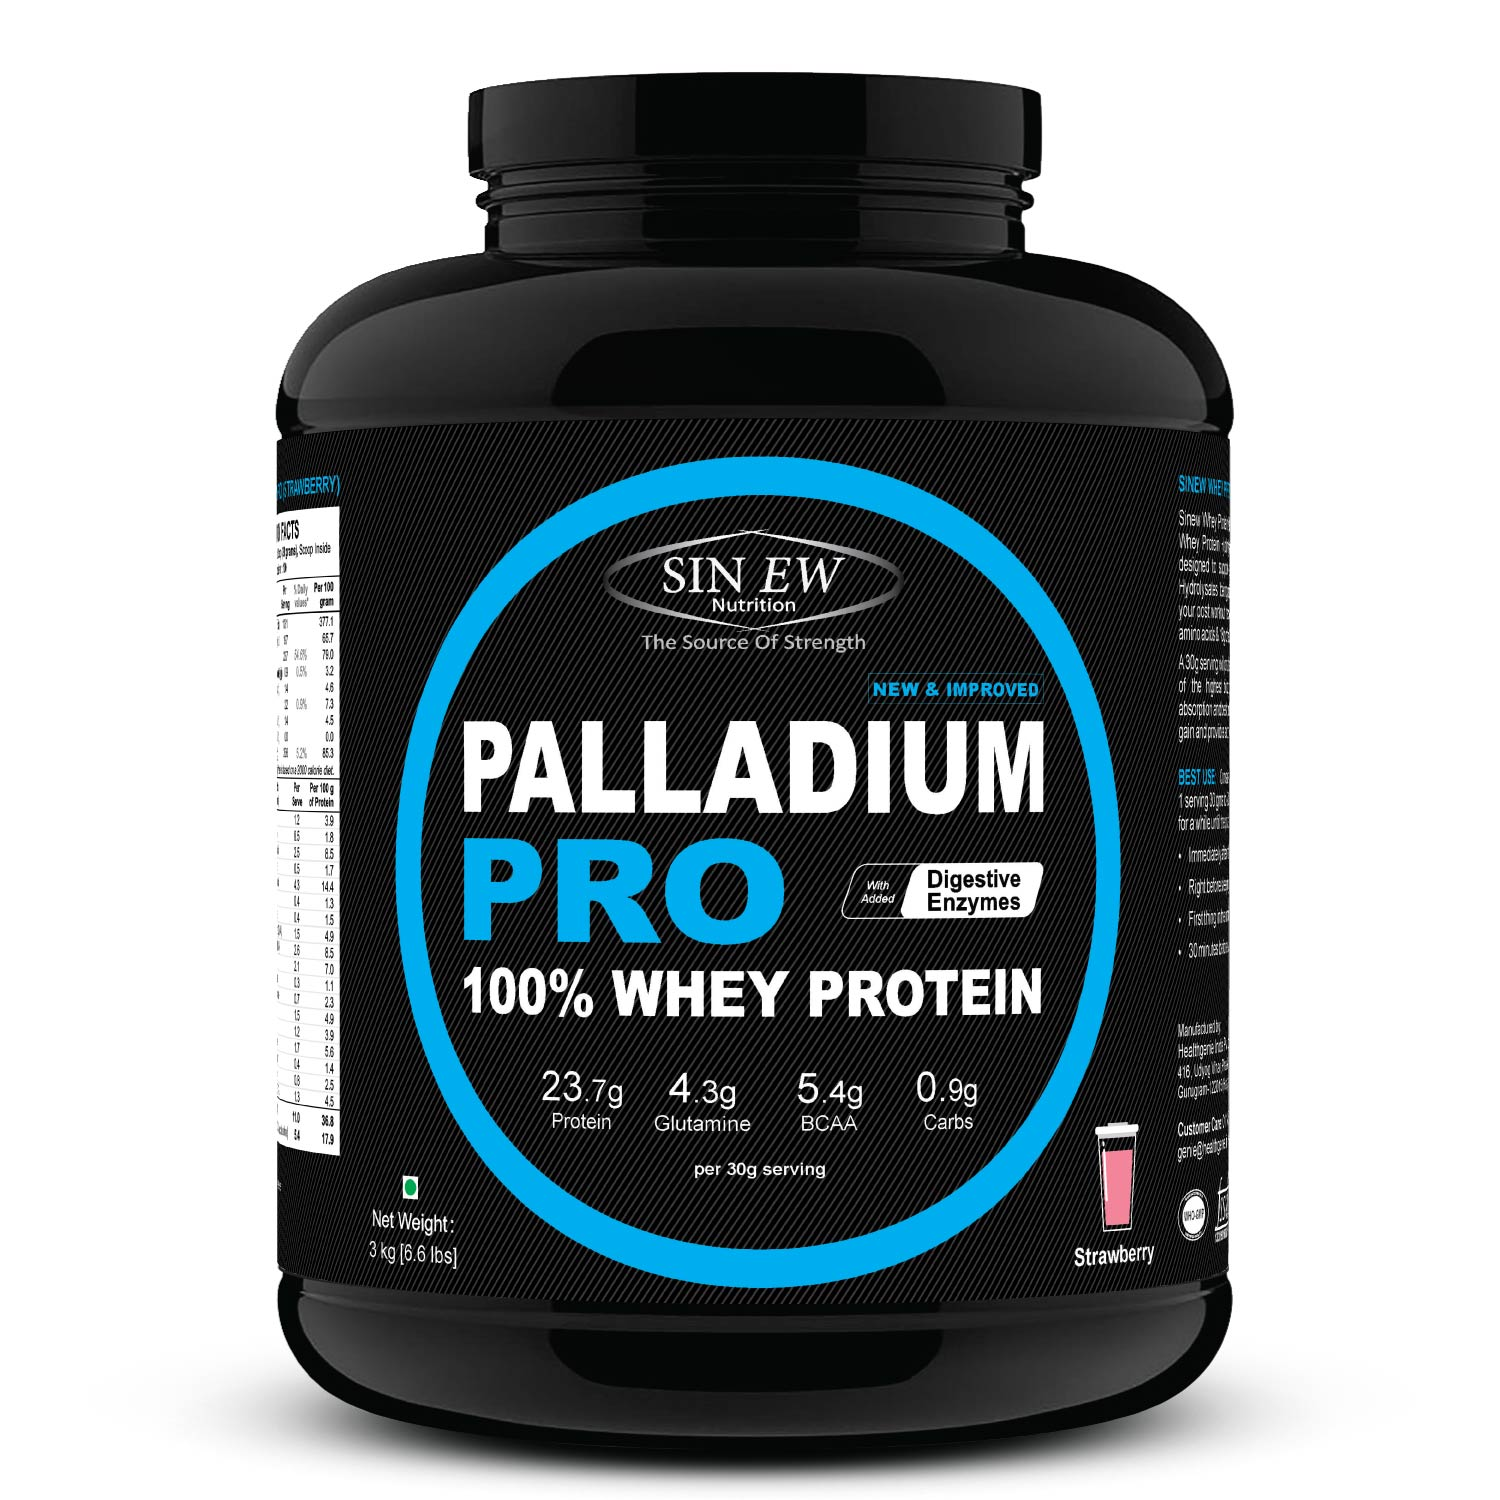 Palladium Pro (strawberry) 3 F